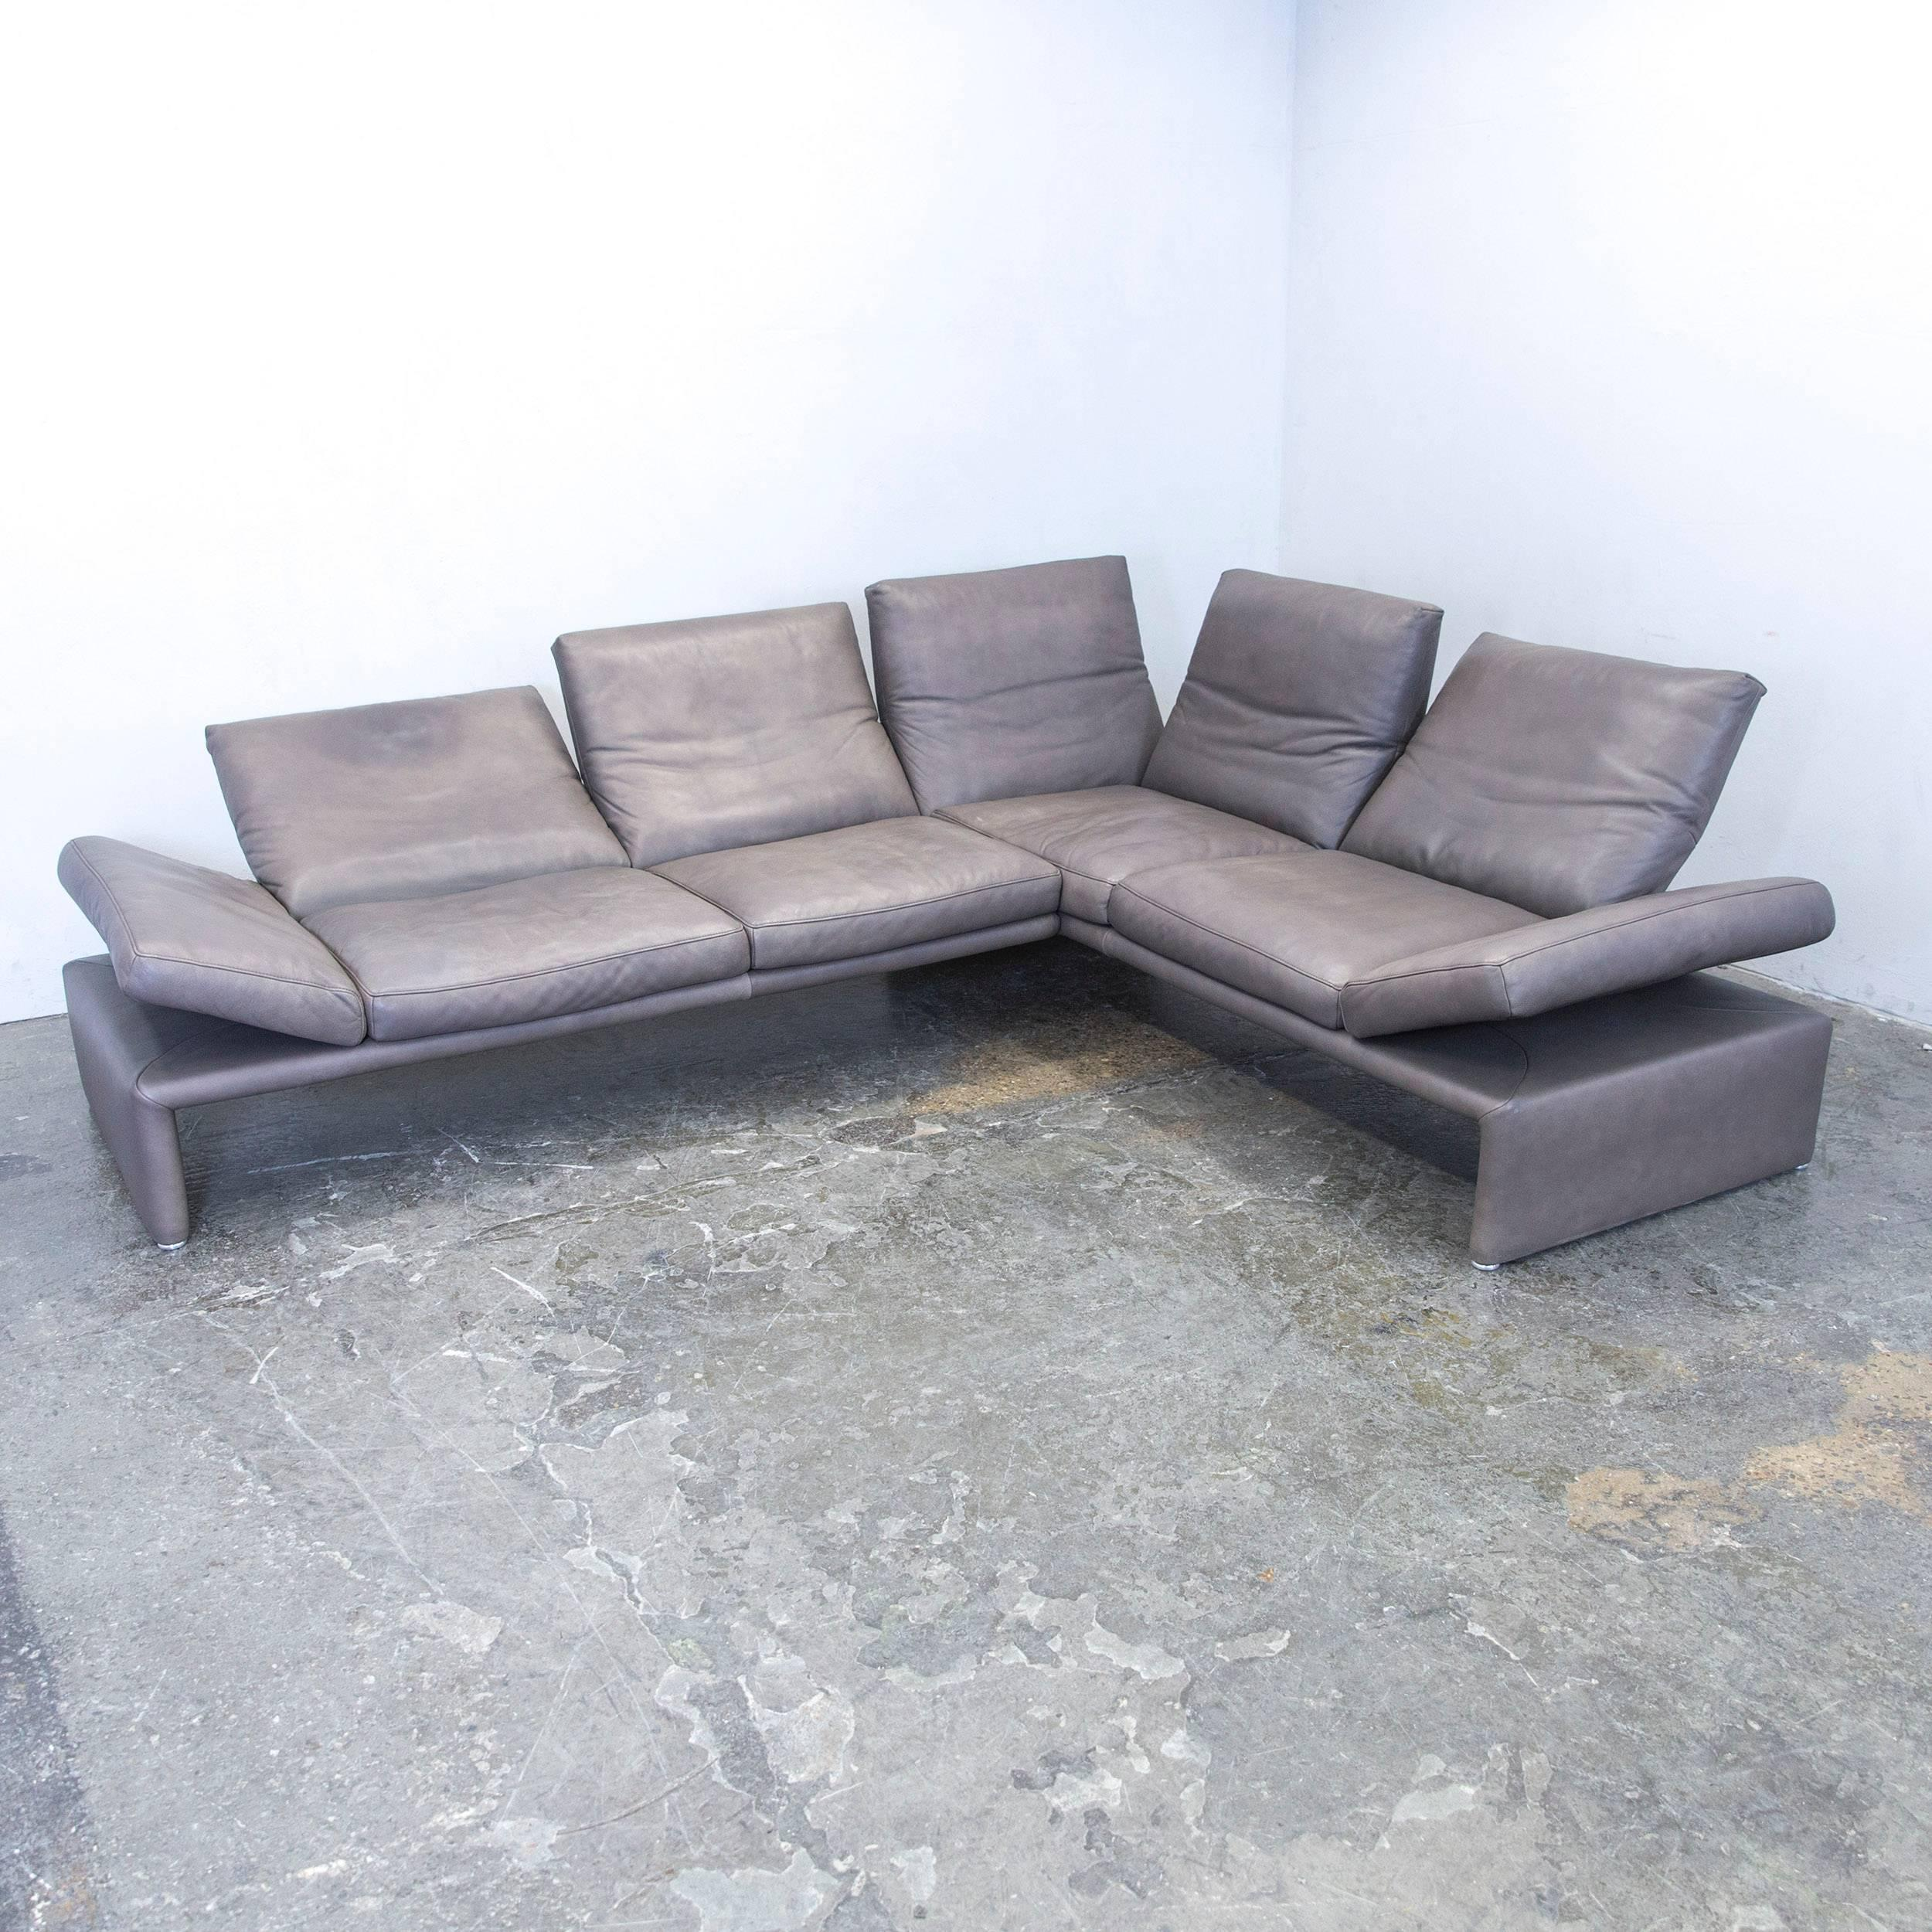 Www Koinor Com Koinor Raoul Designer Corner Sofa Leather Brown Function Couch Modern With Www